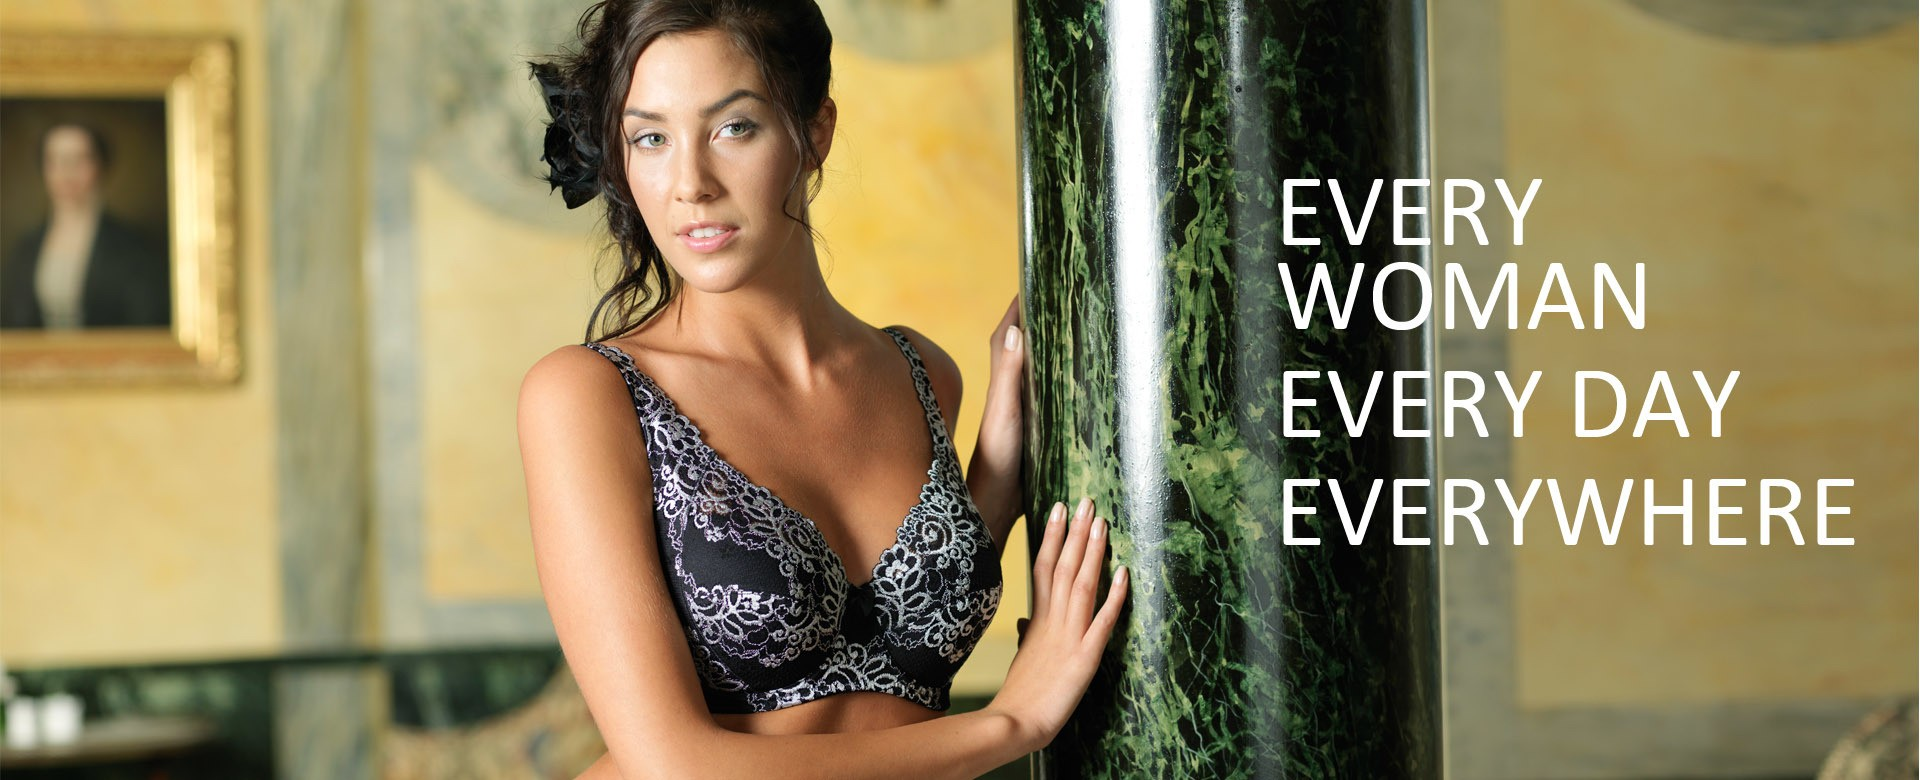 Dominique bh underkläder every woman everyday everywhere PXC Underwear